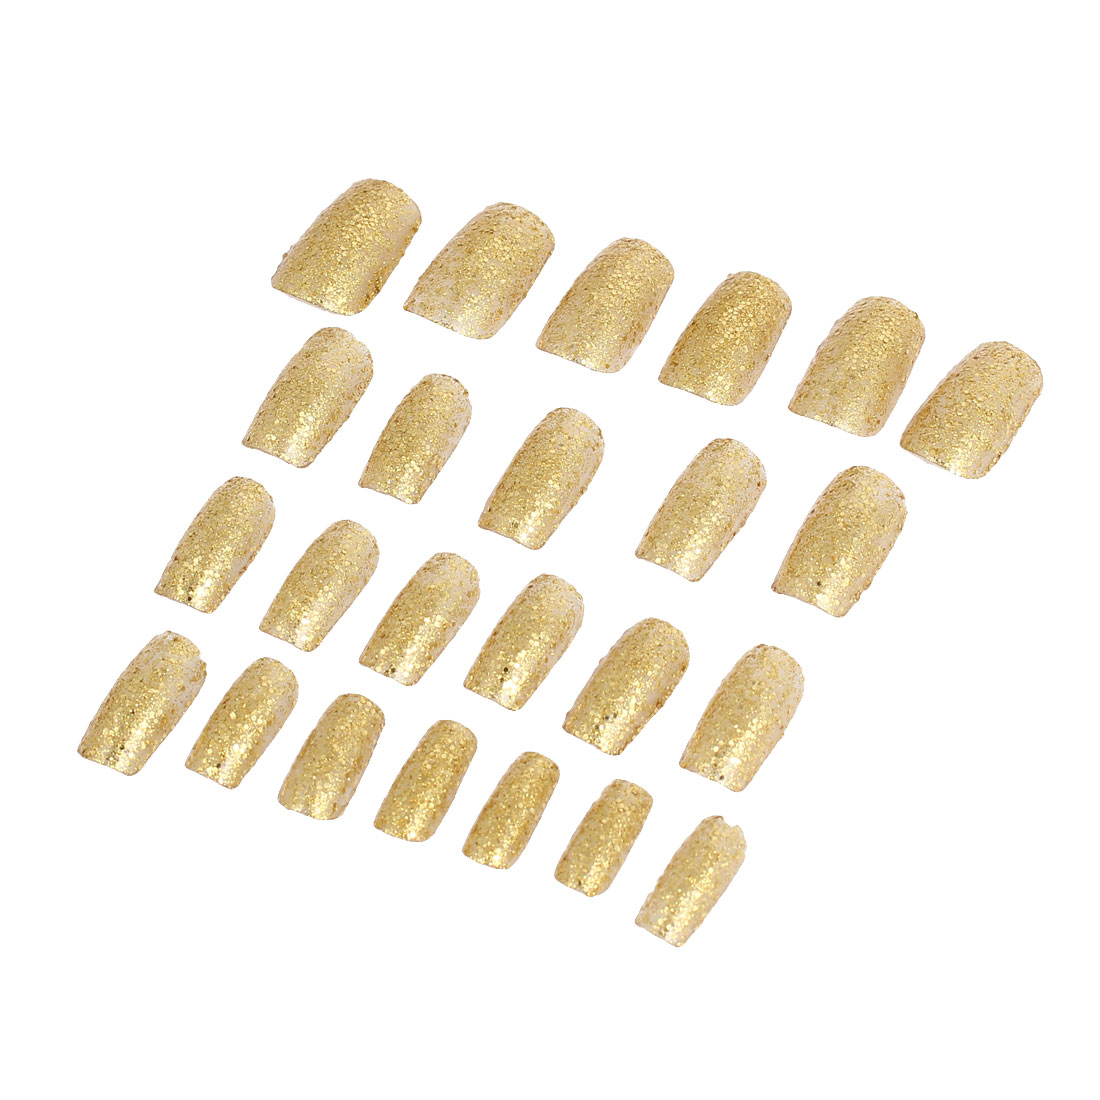 Lady Powder Detail DIY Fake False Fingernail Full Nail Art Tip Gold Tone 24 in 1